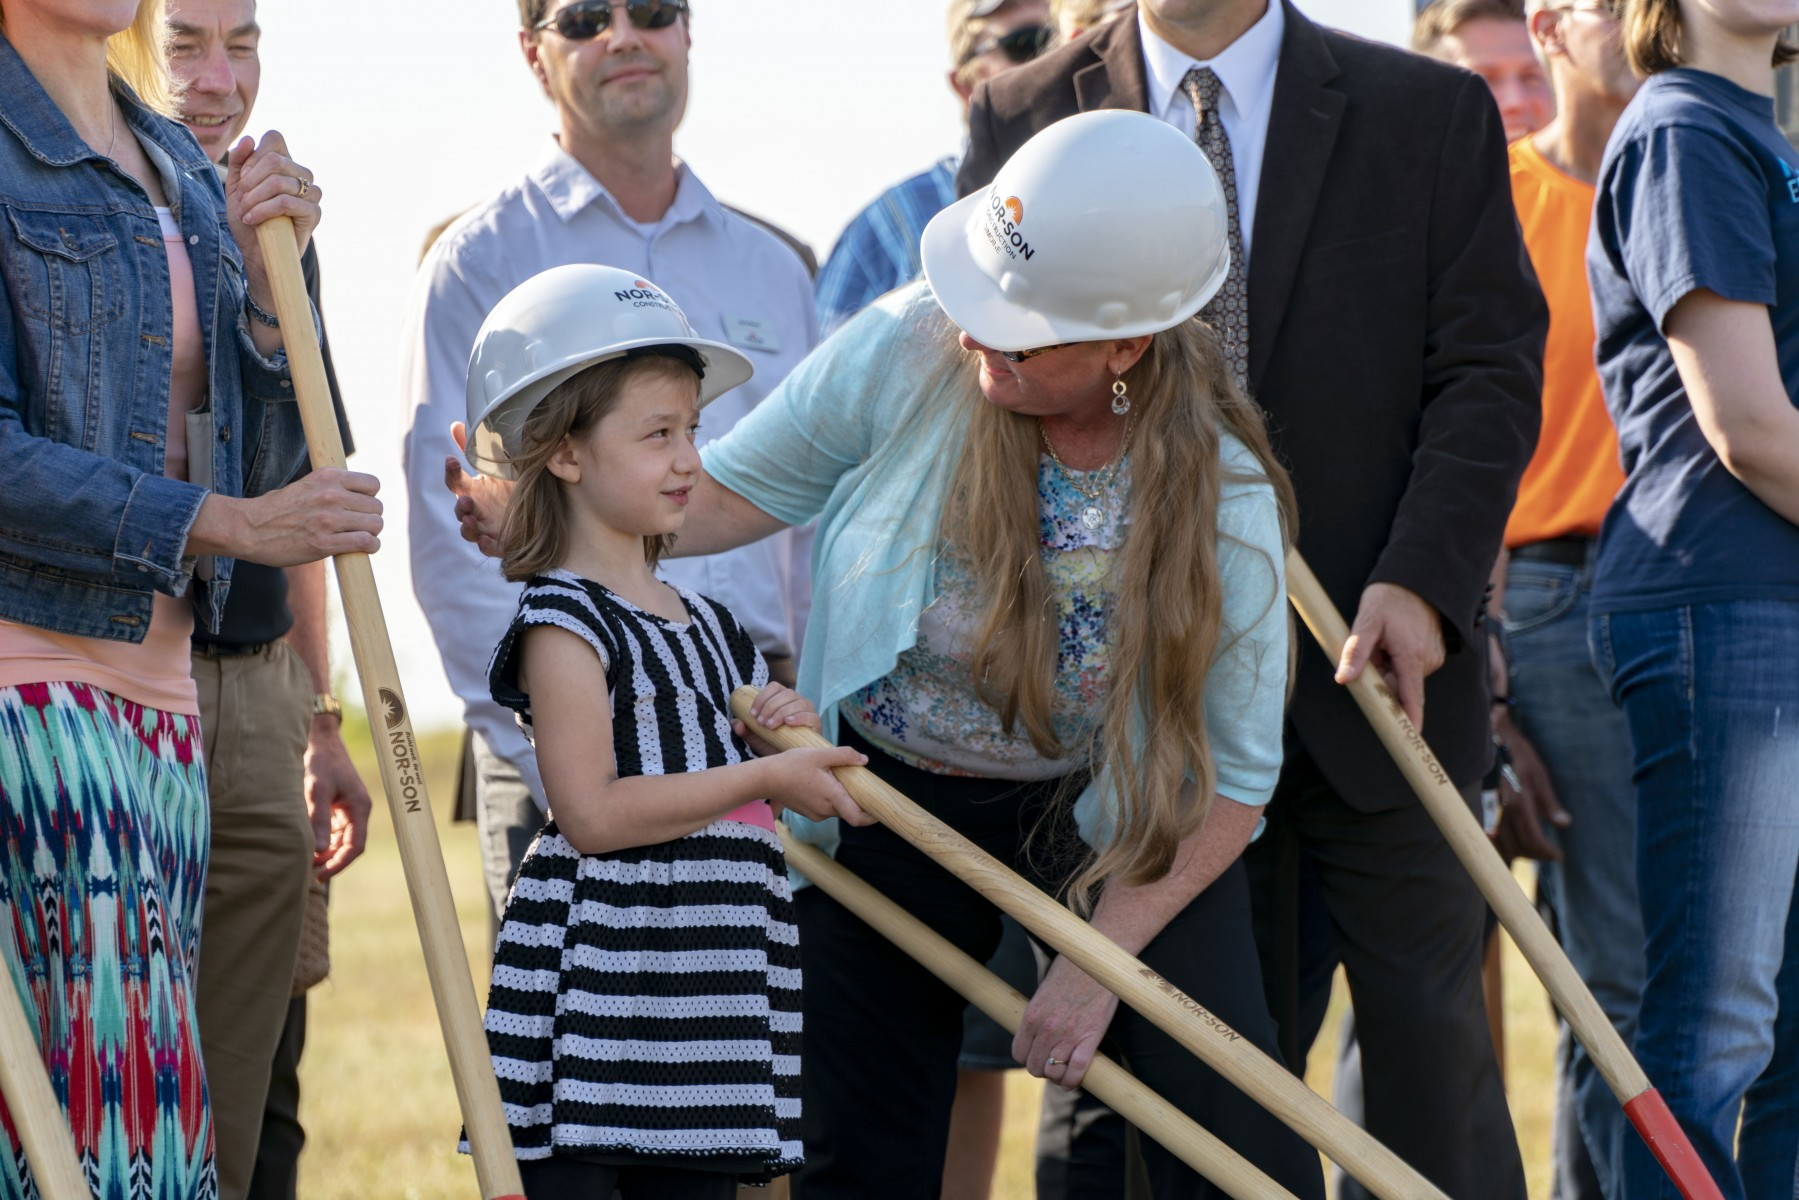 It was a good day to 'throw dirt' as all ages attended Mid-State's groundbreaking event.